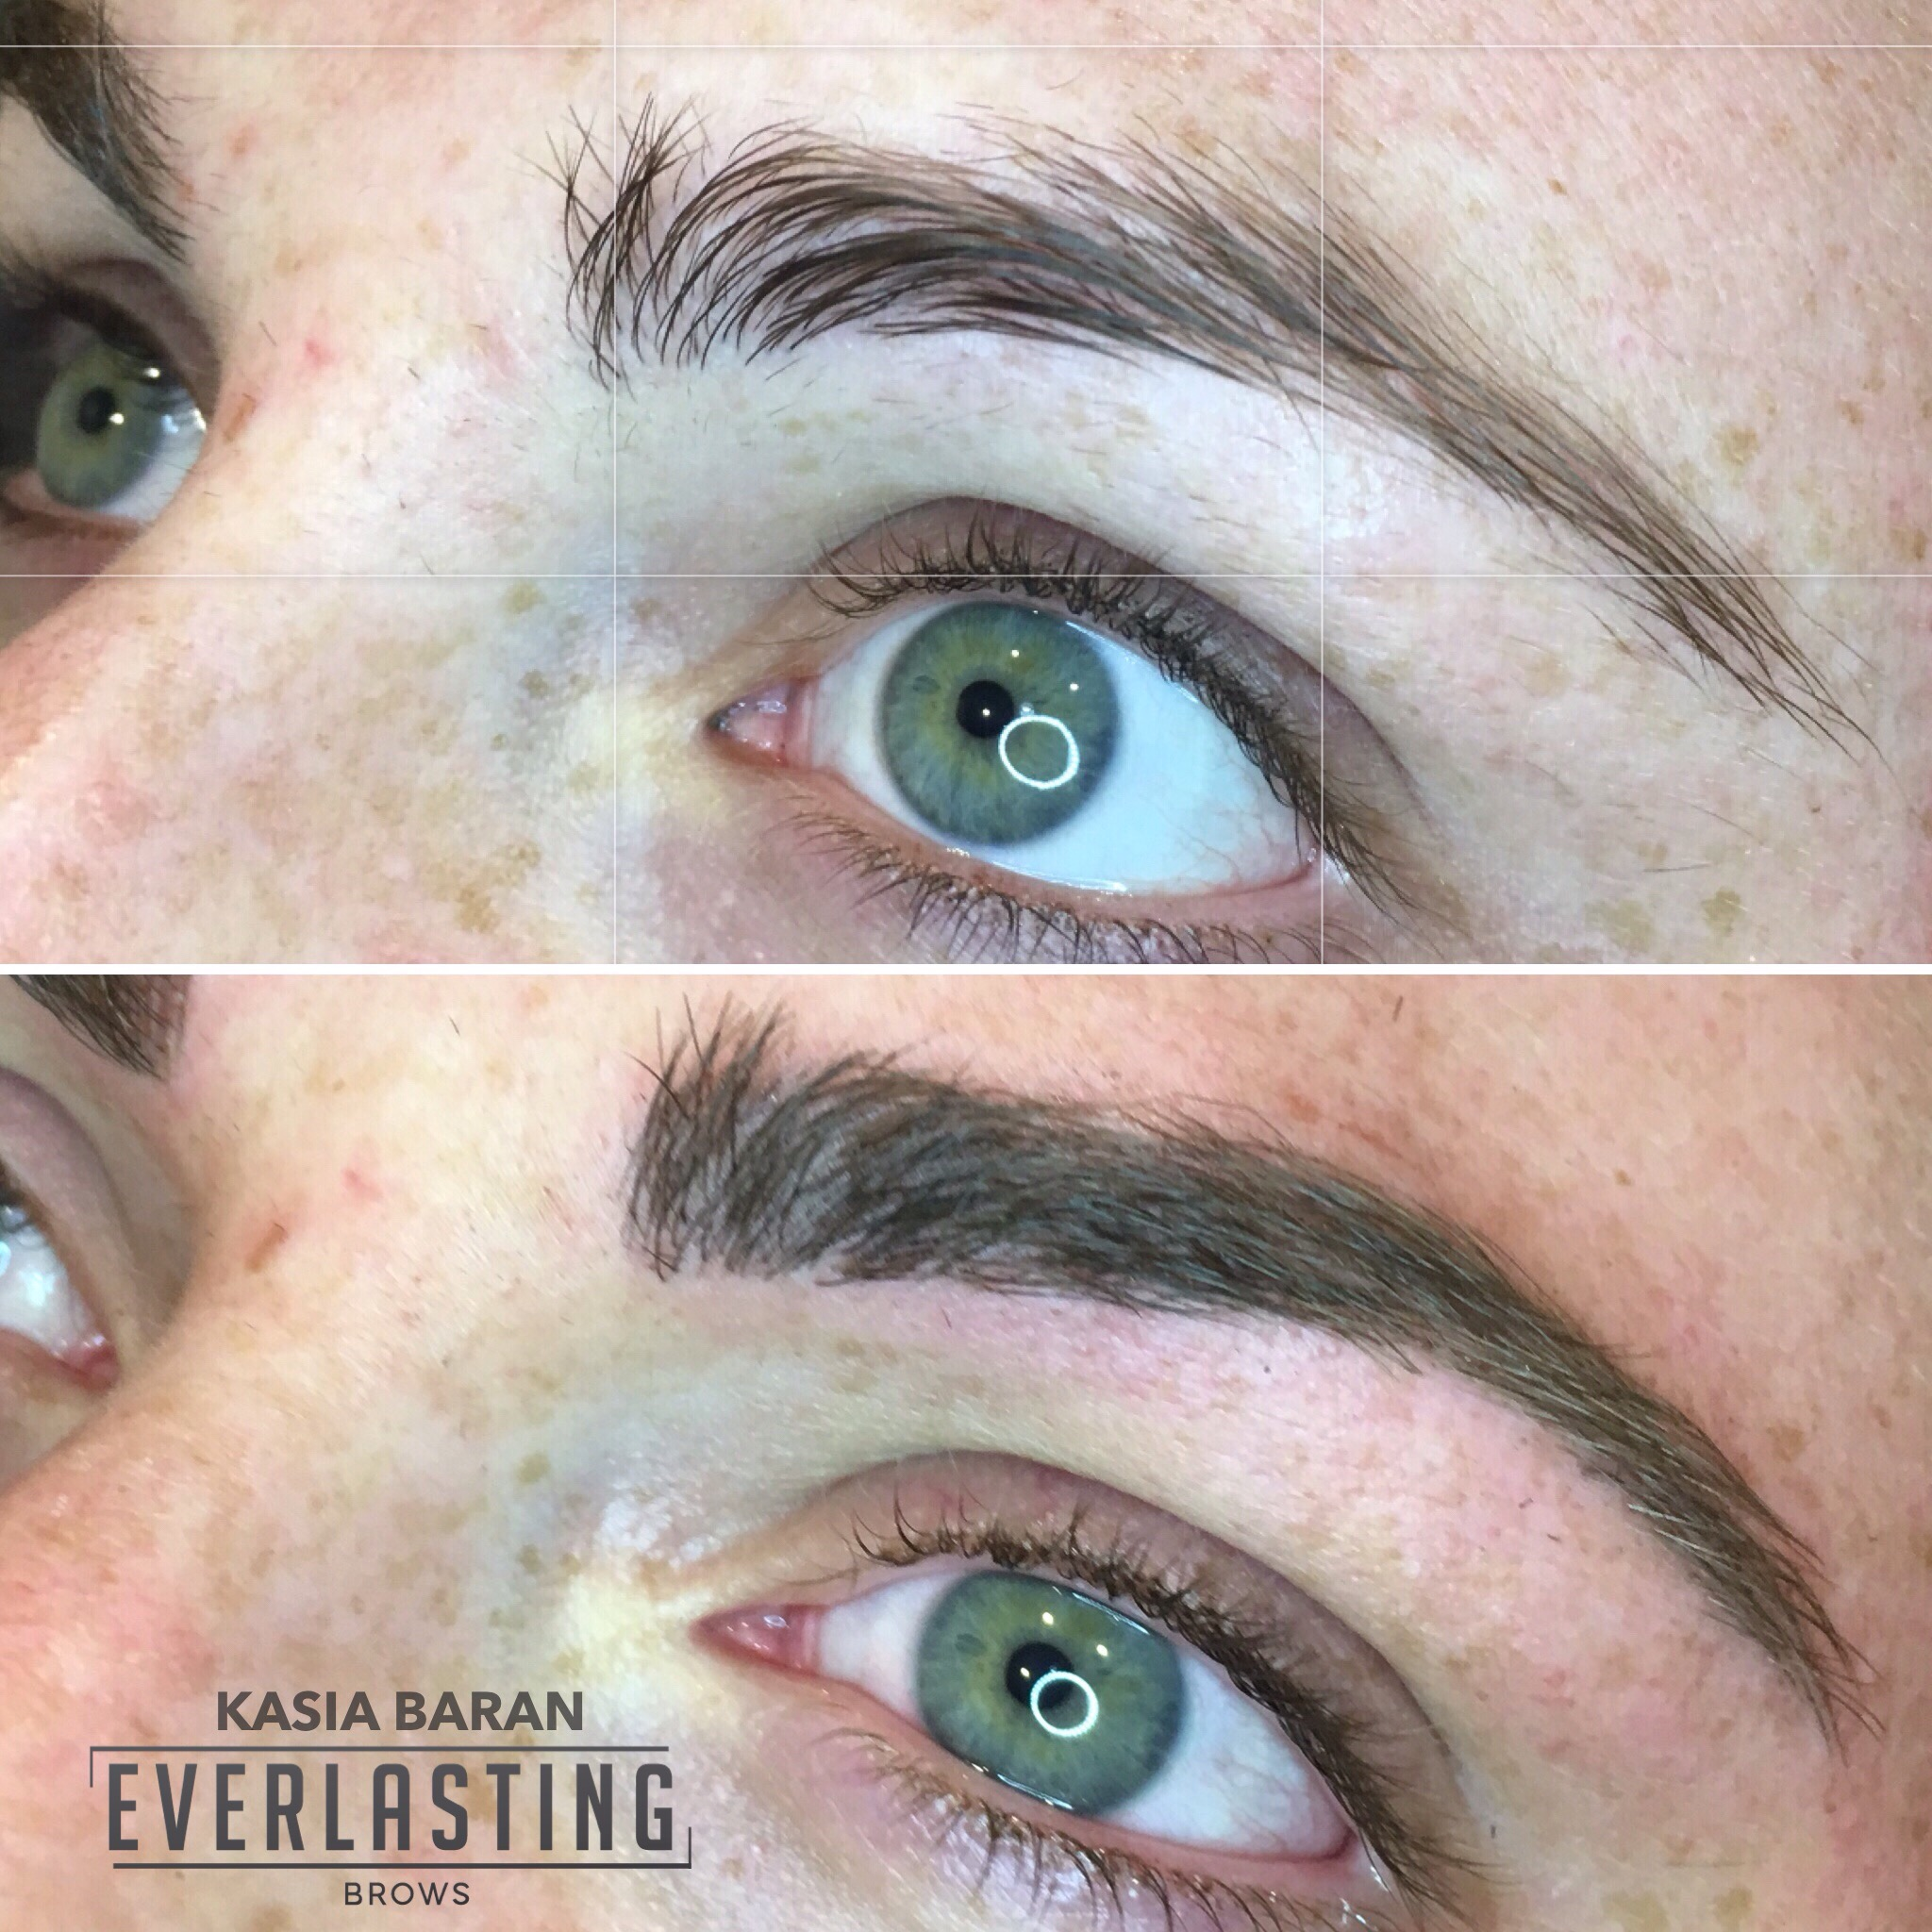 EVERLASTINGBROWS, EVERLASTING, MICROBLSDING DALLAS, MICROBLADINGDALLAS, 3DBROWS, EYEBROWS, SEMIPERMA